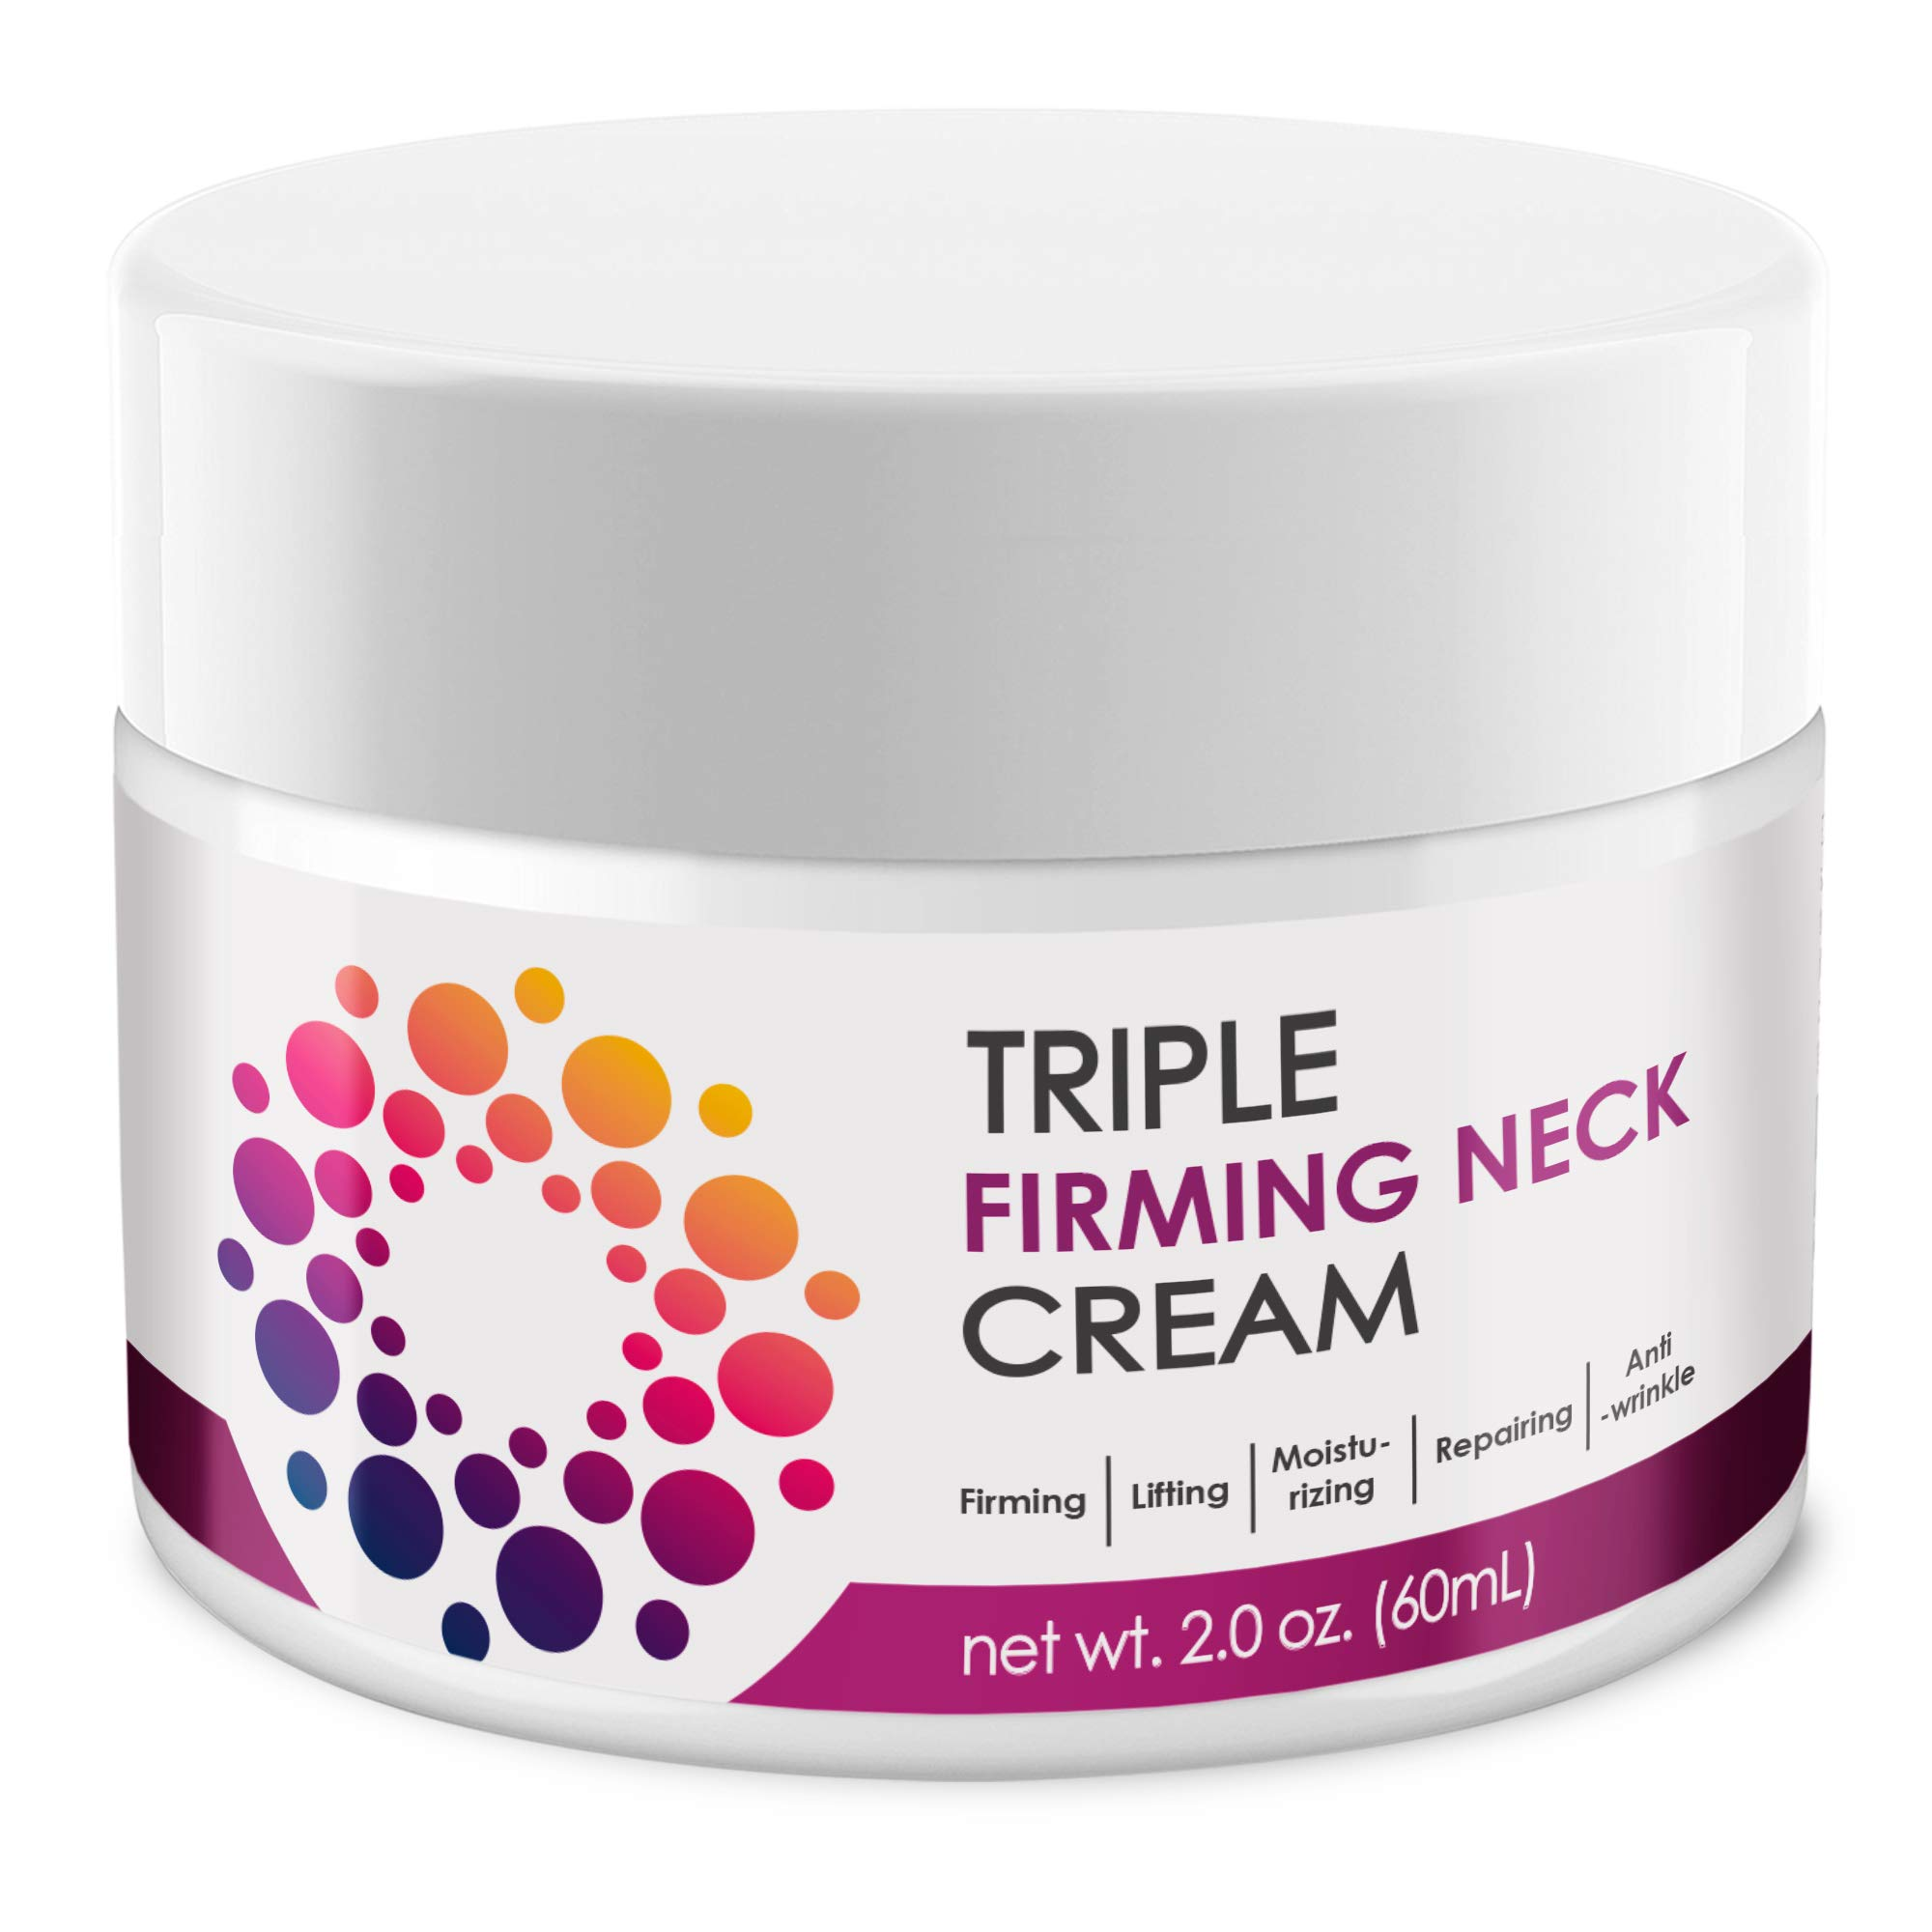 ACTIVSCIENCE Neck Firming Cream, Anti Aging Moisturizer for Neck & Décolleté, Double Chin Reducer, Skin Tightening Cream, Day & Night, For men & women, 2 fl oz.